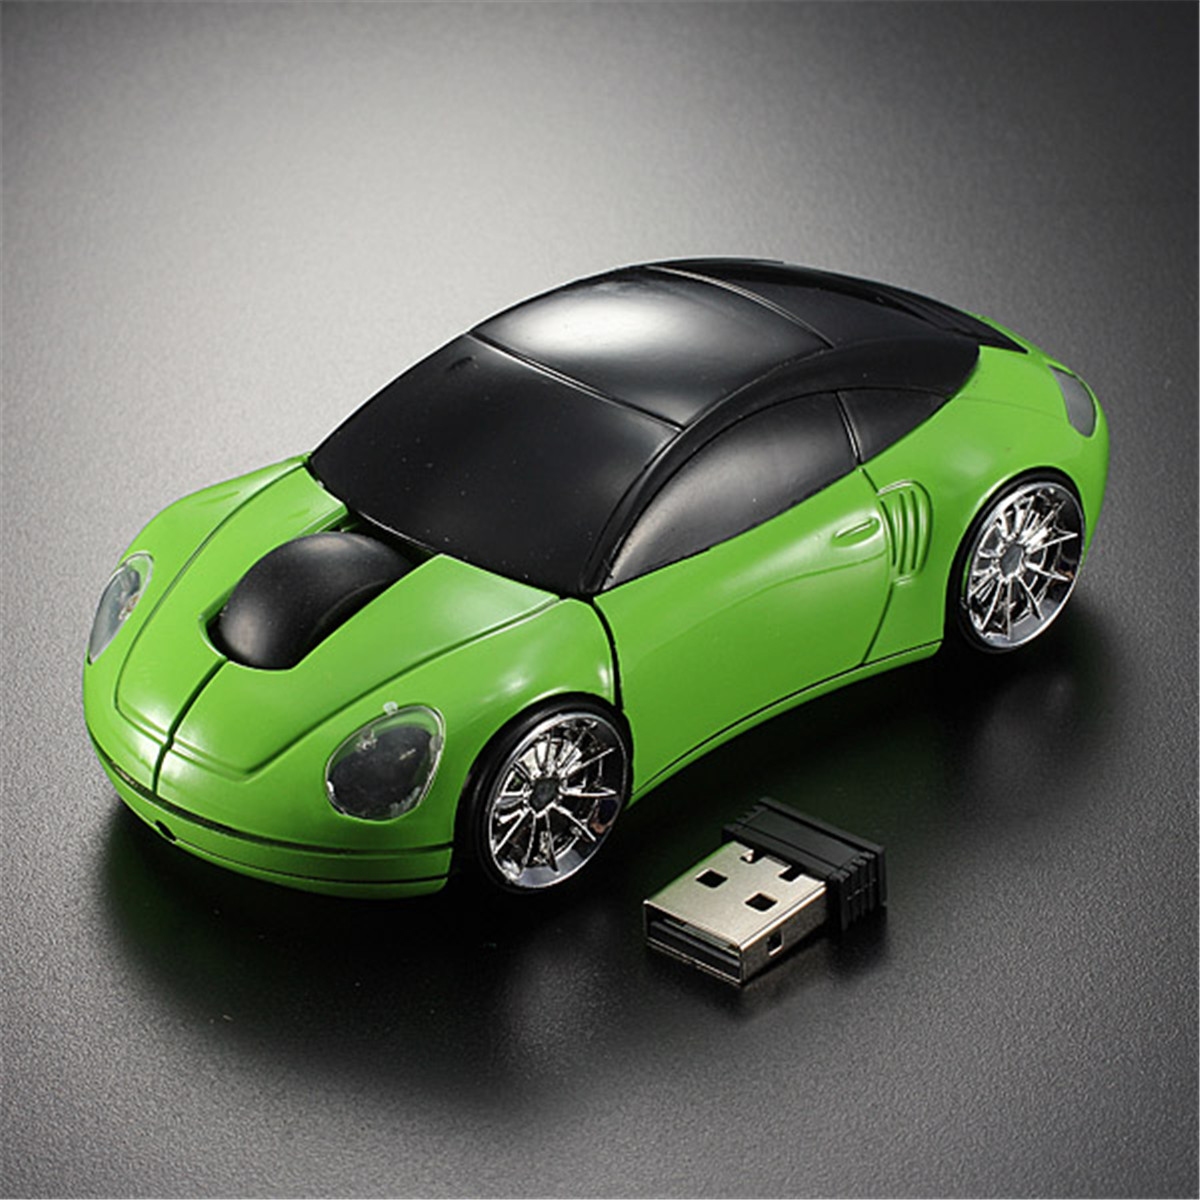 3D Wireless Optical 2.4G Car Shaped Mouse Mice 1600DPI USB For PC laptop ,Pink color